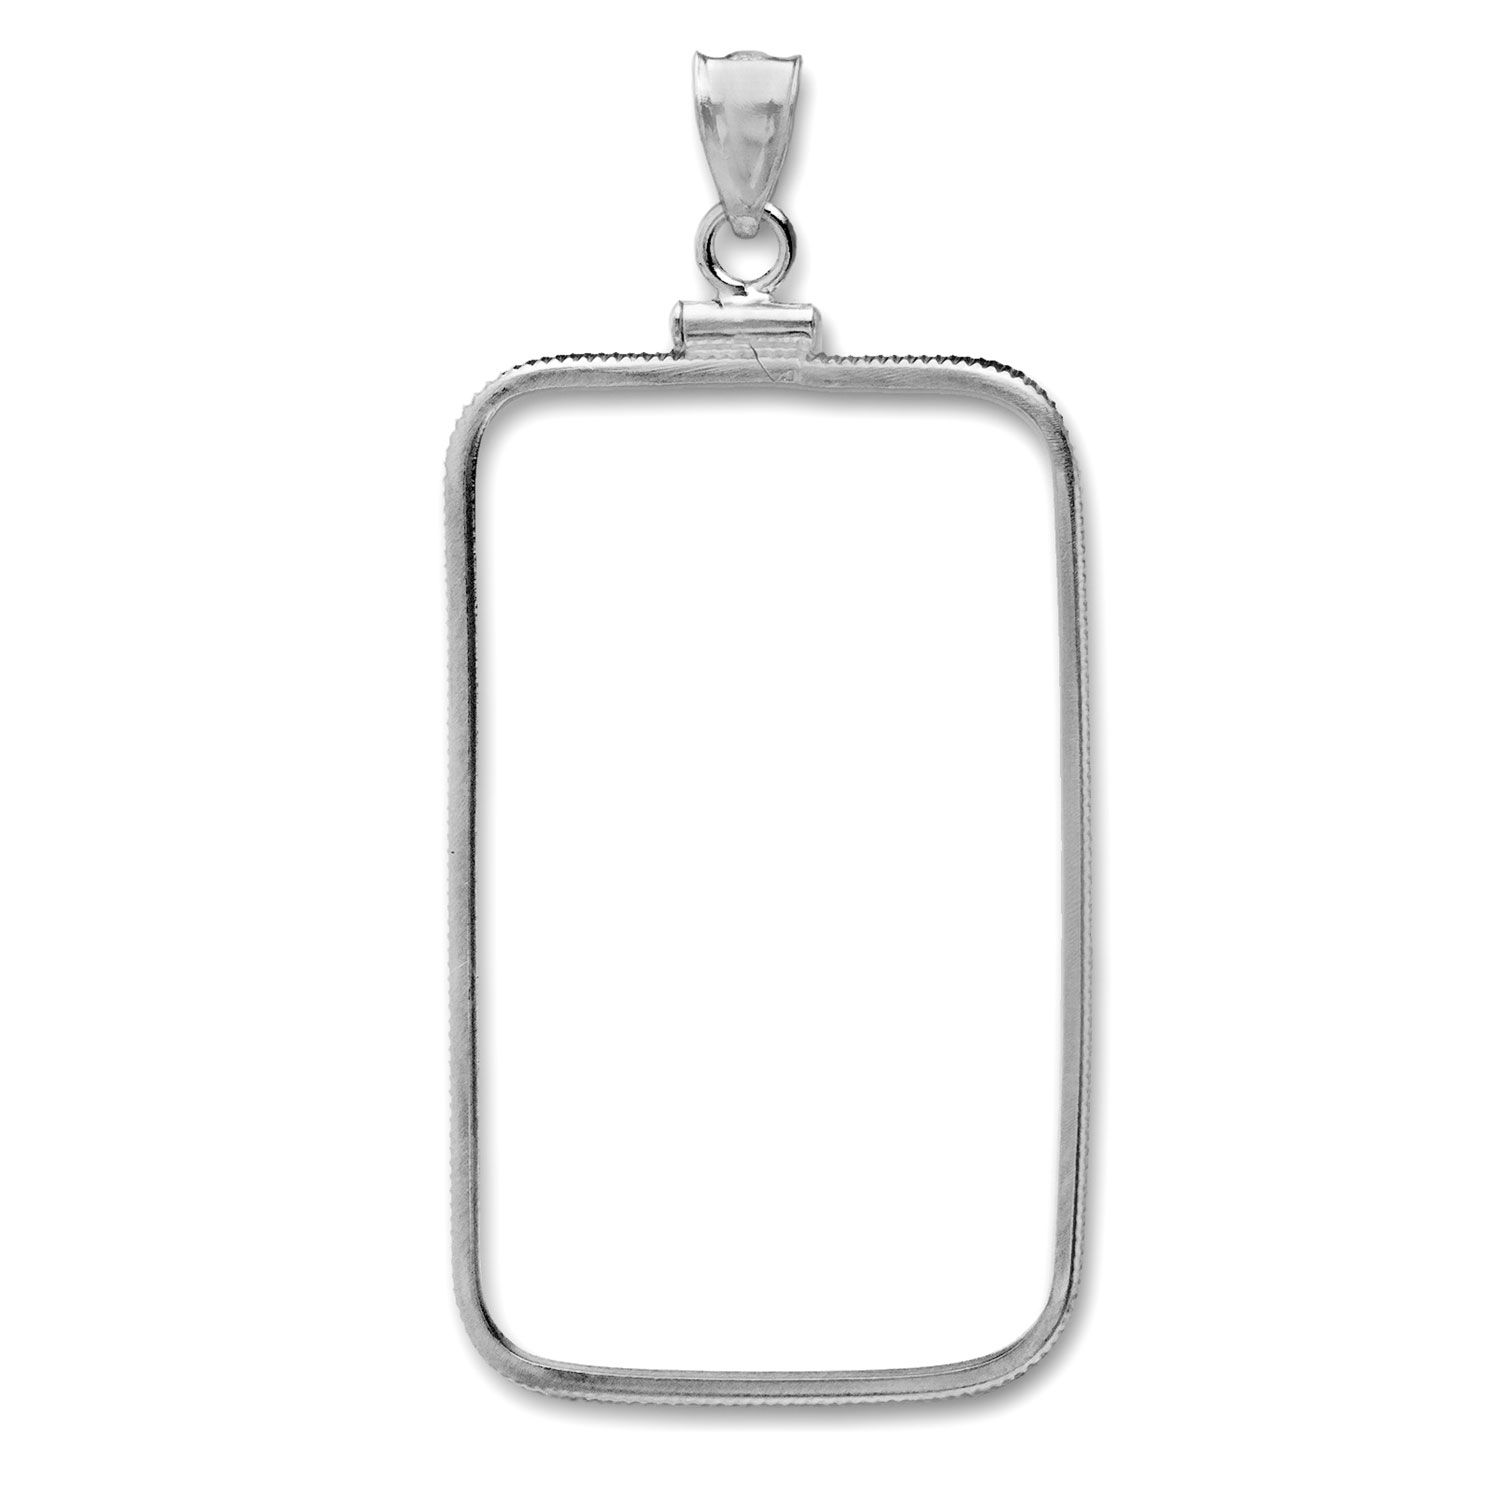 Sterling Silver Plain Front Bezel (Fits 1/2 oz Bars)